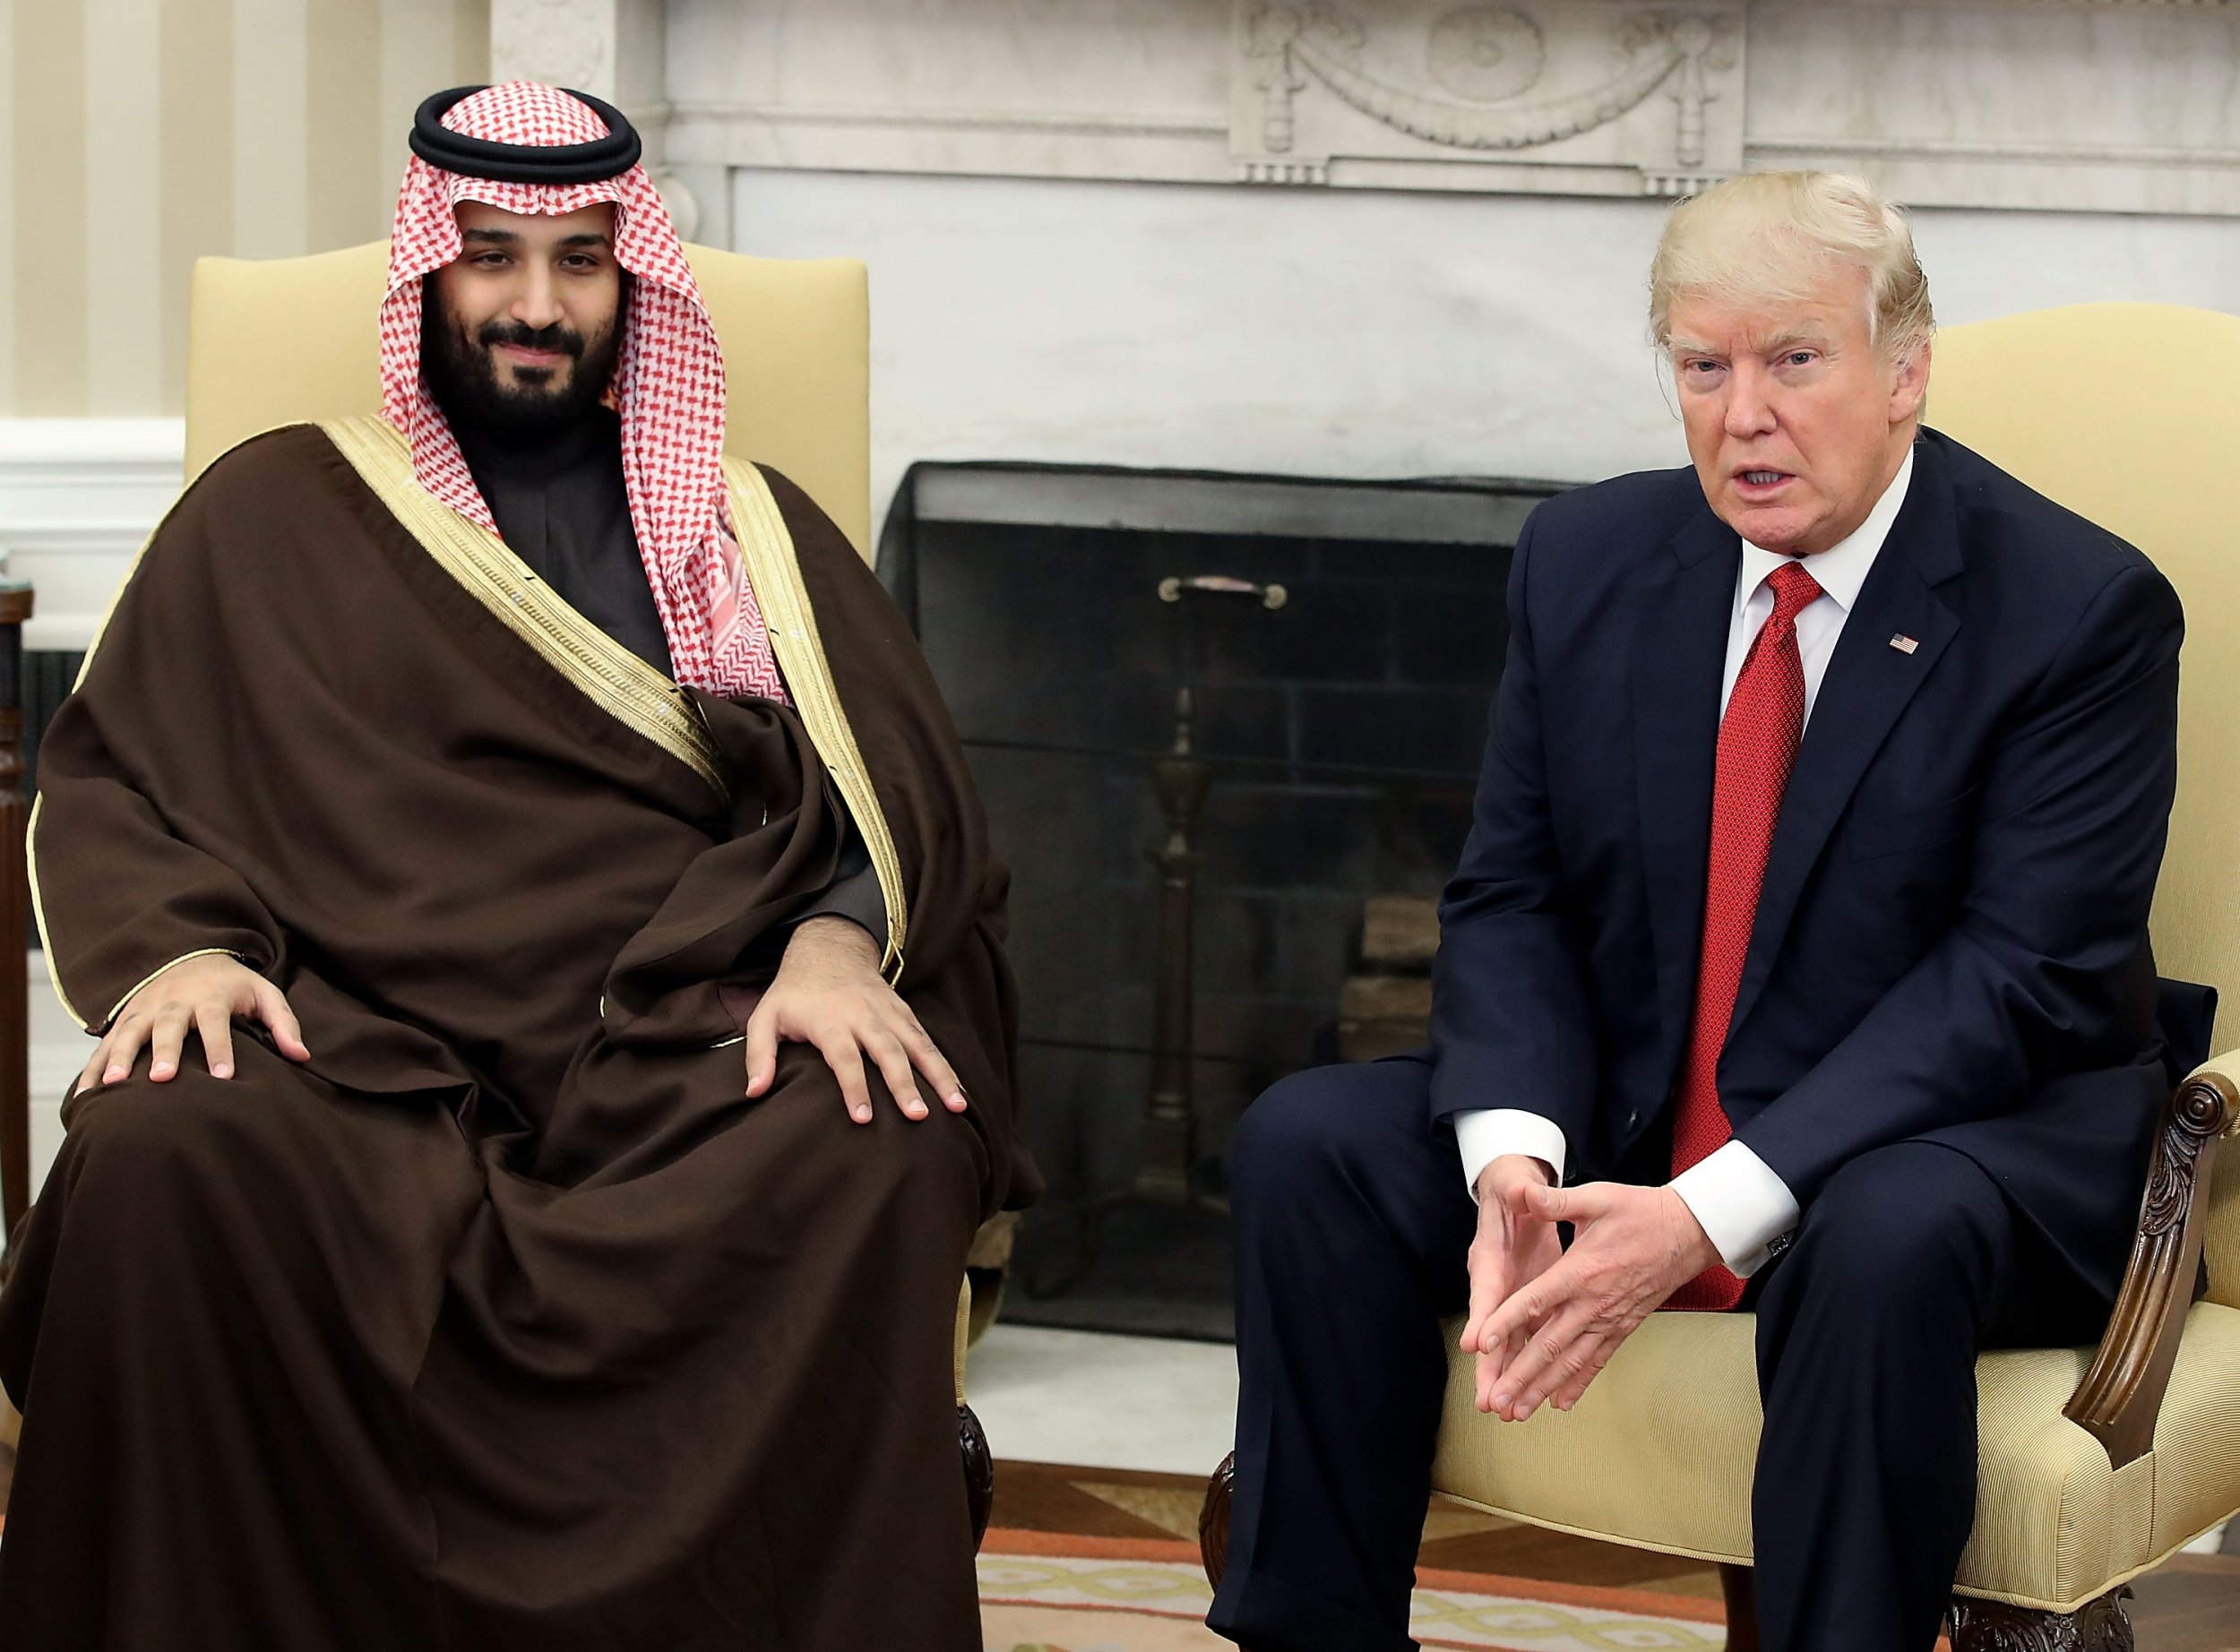 Mohammed bin Salman and Trump